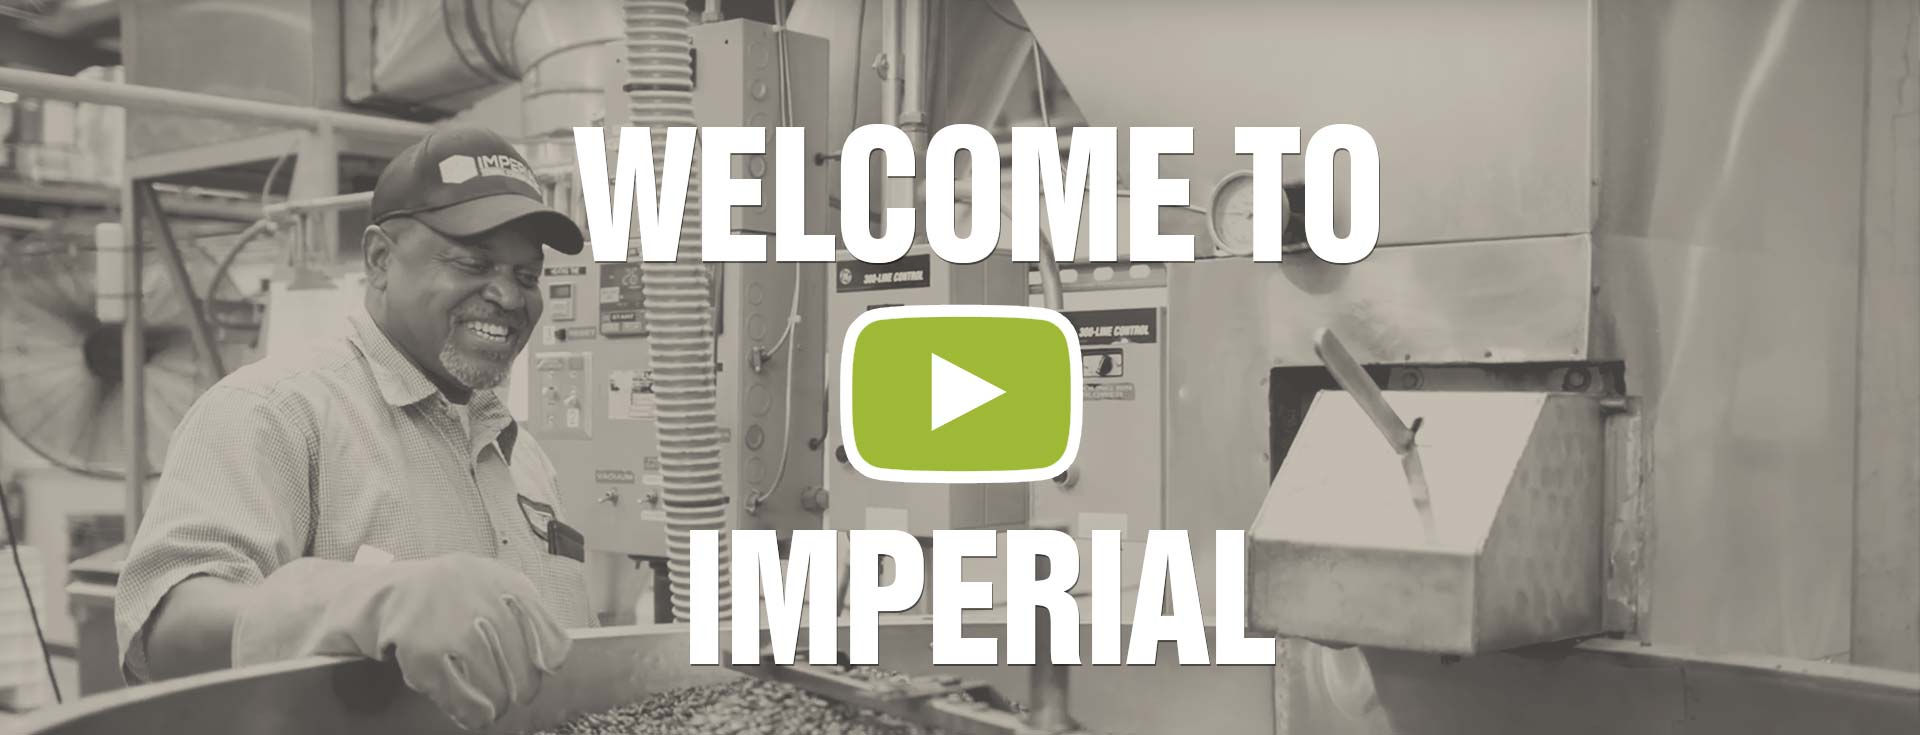 welcome-to-imperial